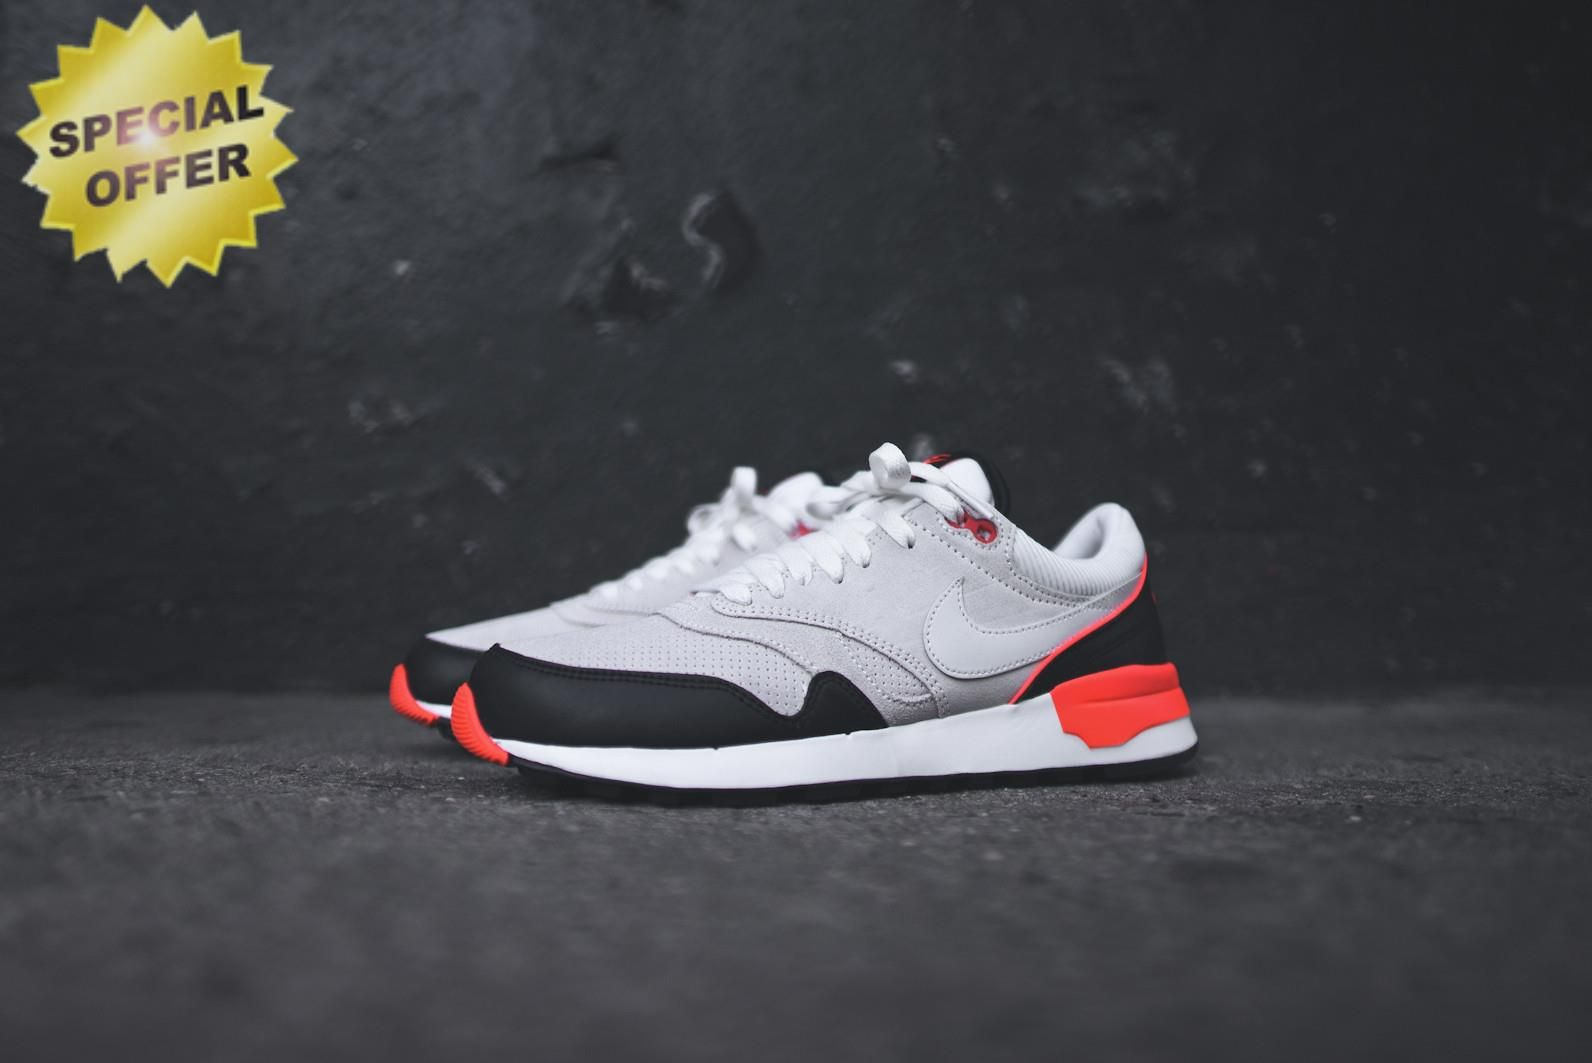 quality design 43b35 04d16 Where Can I Find Nike Air Odyssey LTR 684773-100 Summit White   Black   Bright  Crimson